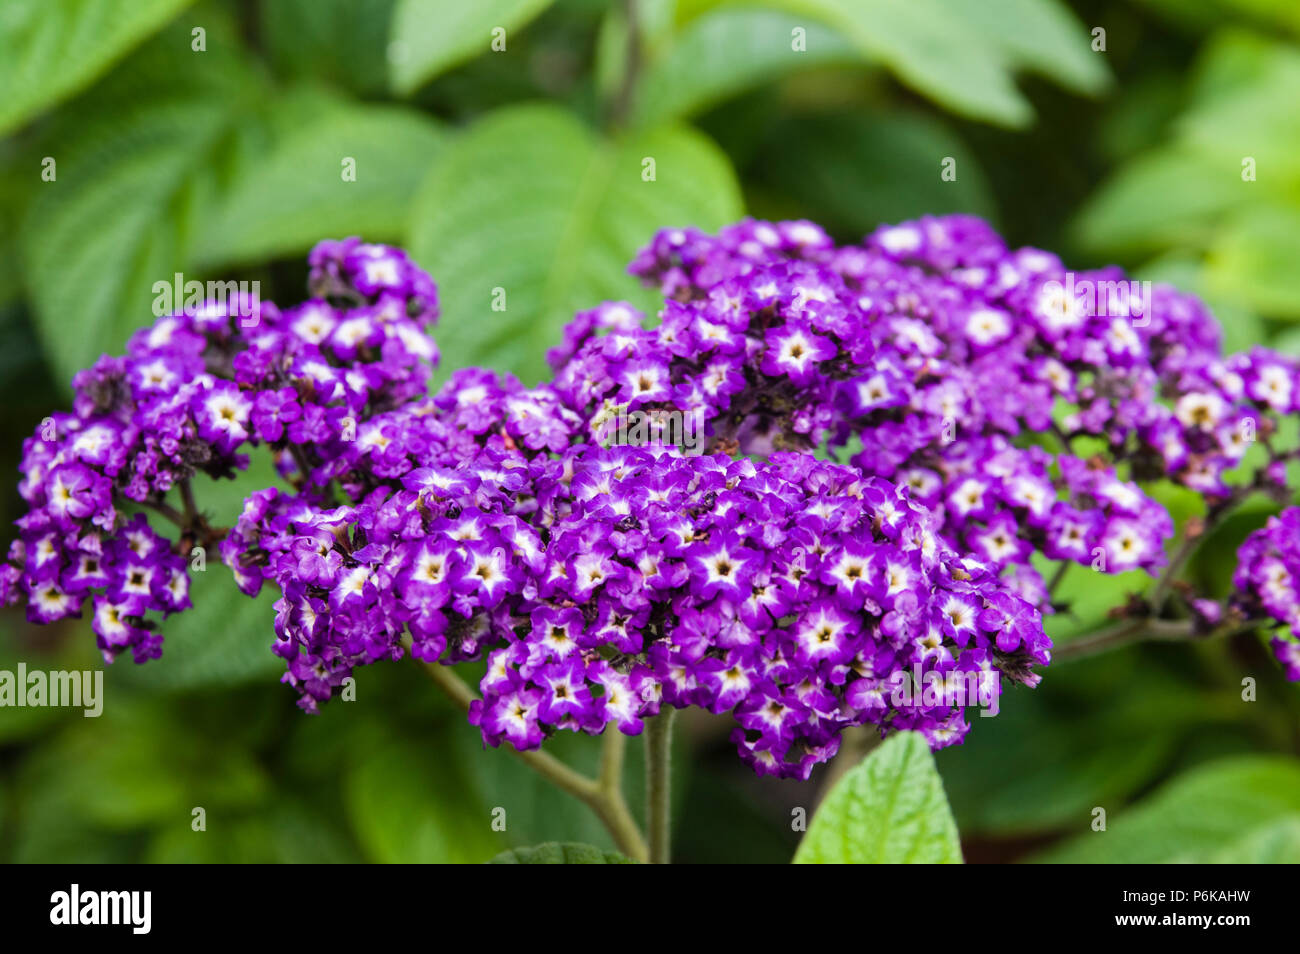 Heliotrope Plants In Bloom With Blue Flowers Stock Photo 210637781